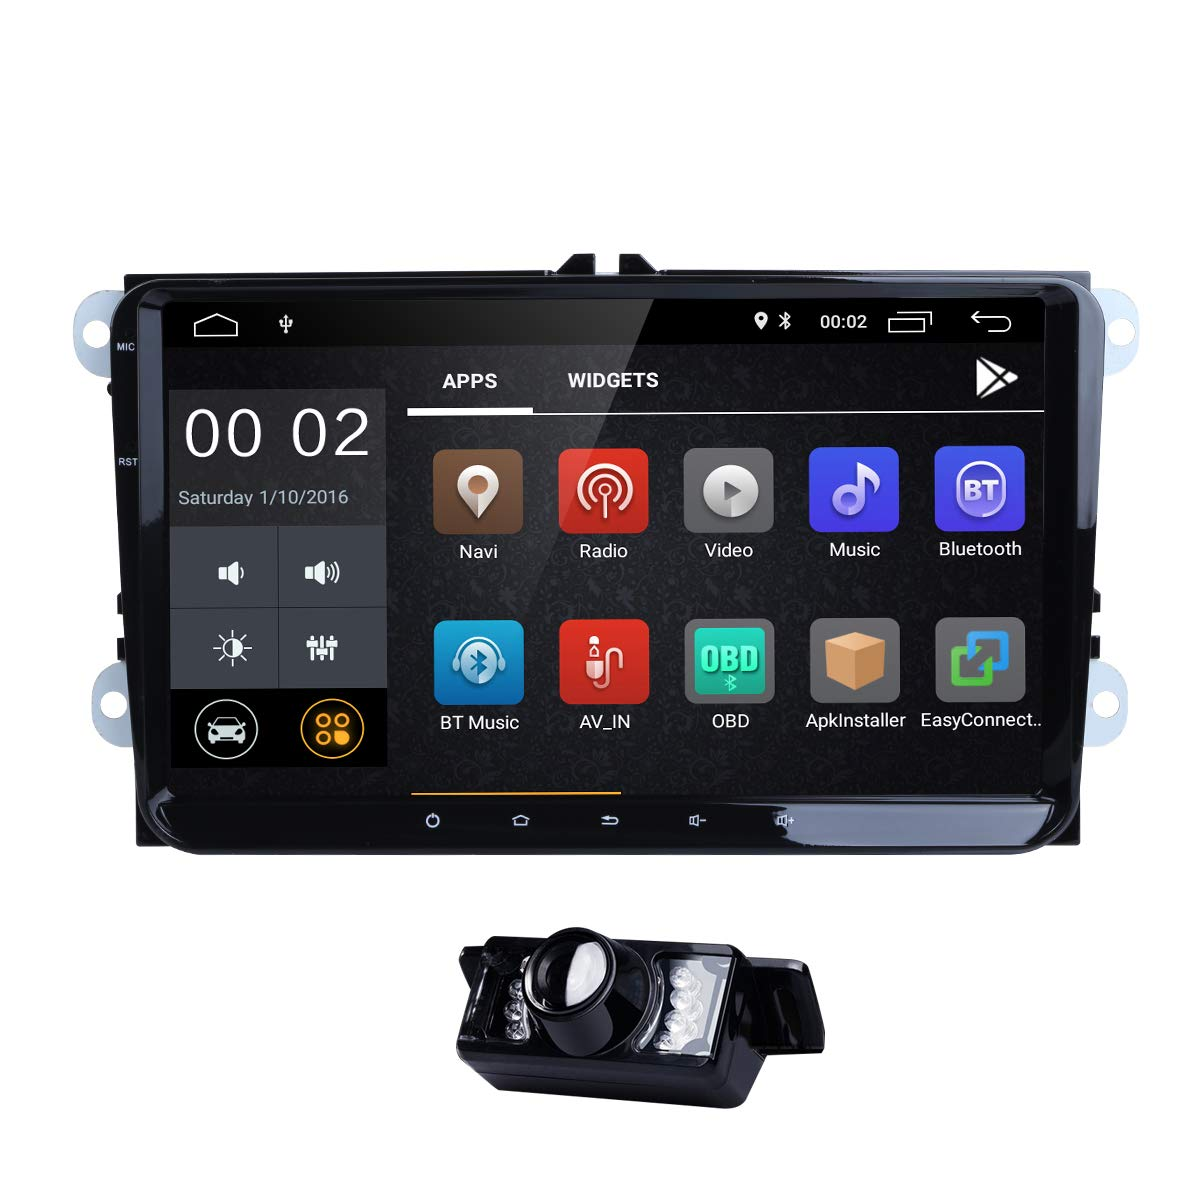 WiFi 9 Inch Android 8.1 Double 2 Din Car Stereo Video Receiver Radio GPS Navi for VW Golf Polo Passat Tiguan Jetta EOS+North America Map+Camera Capacitive Screen